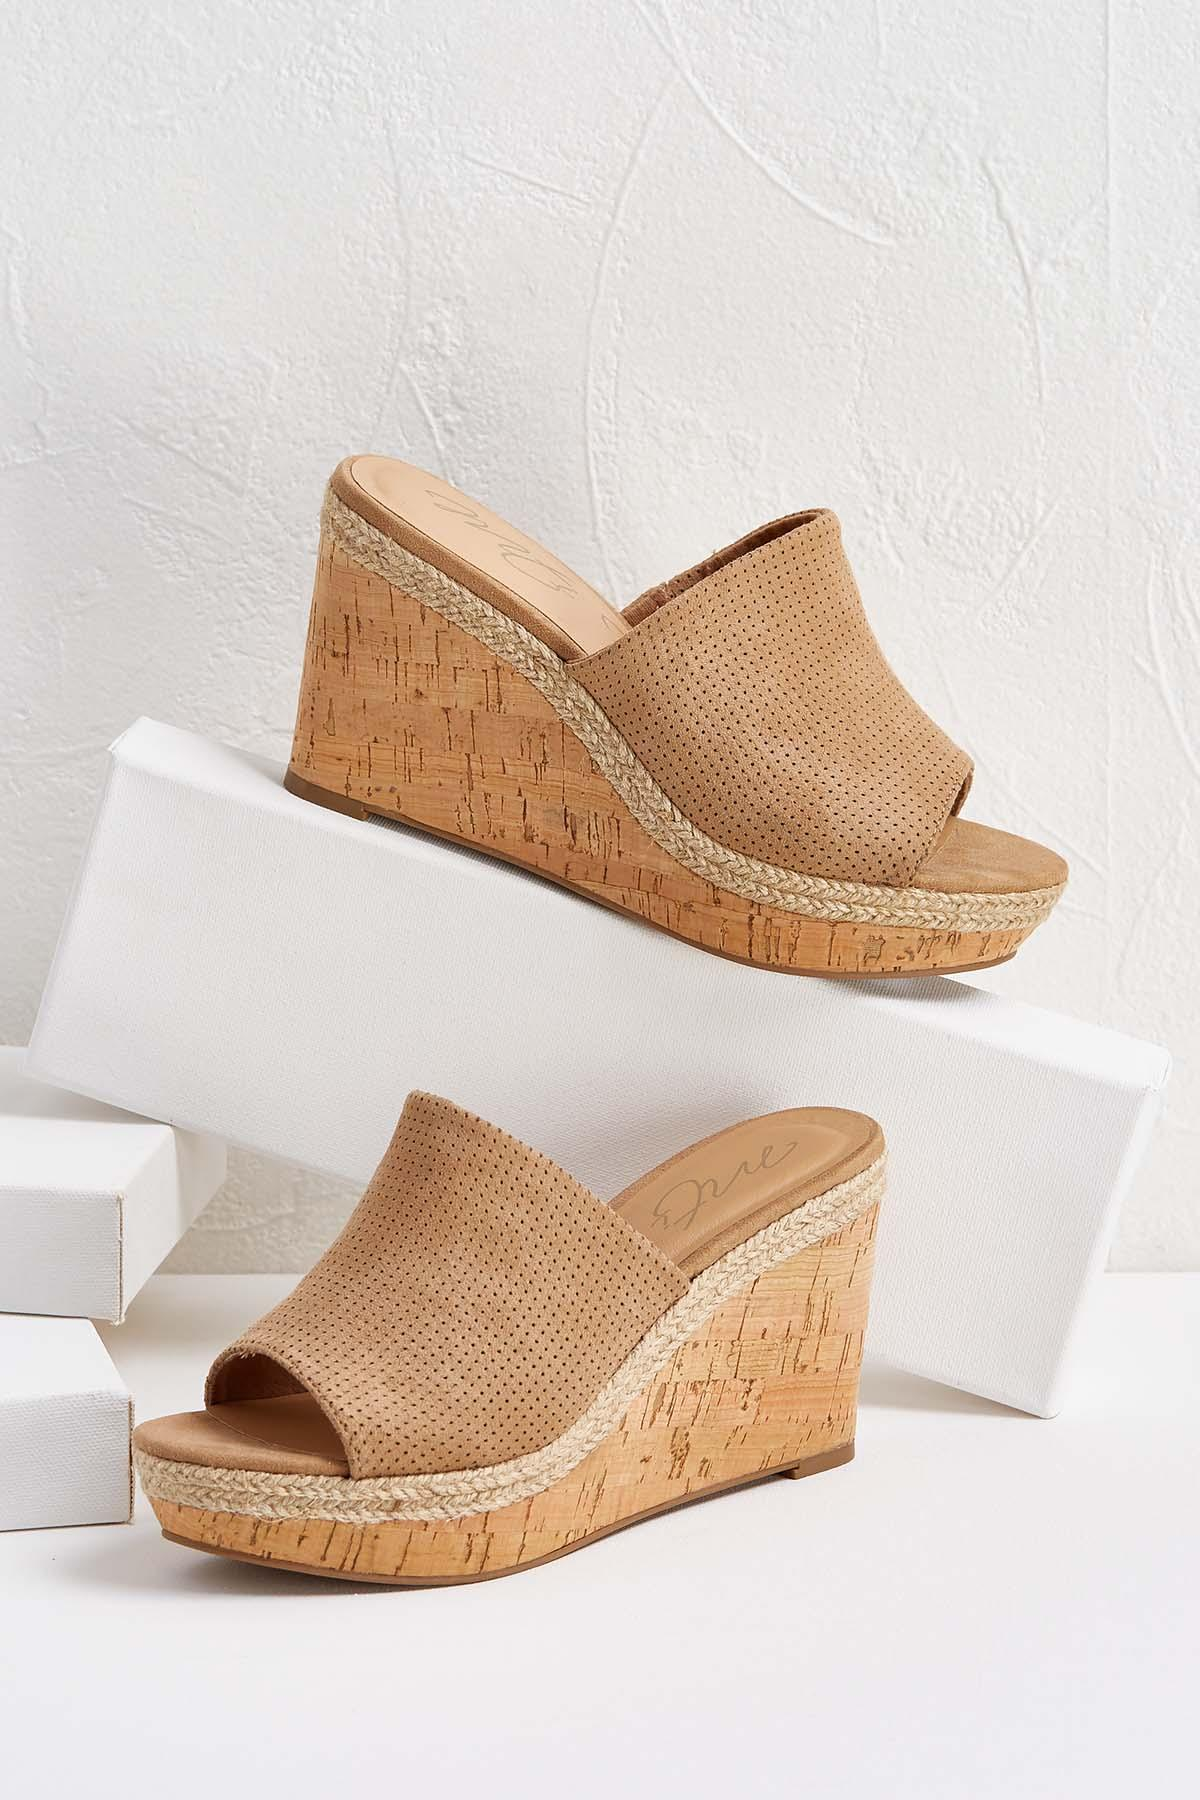 Perforated Cork Wedges